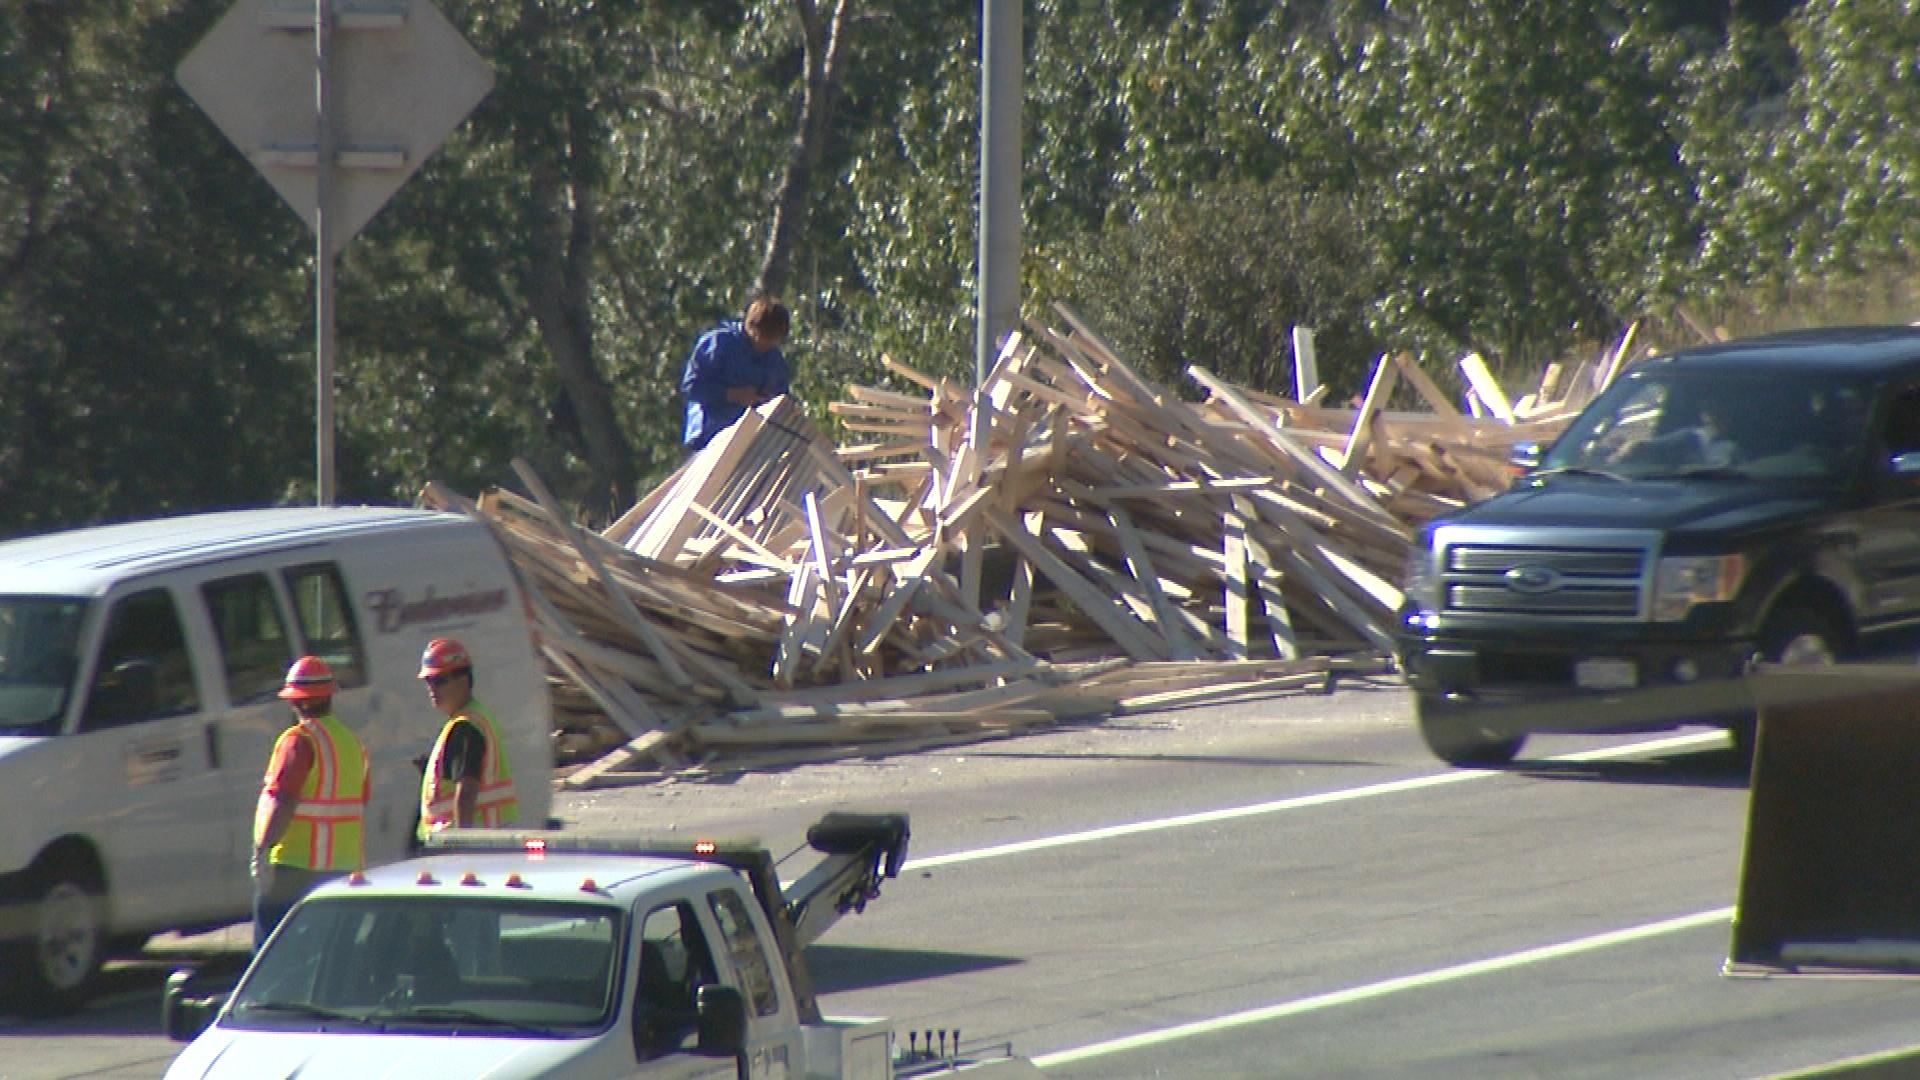 Lumber on the highway several hours after the crash (credit: CBS)